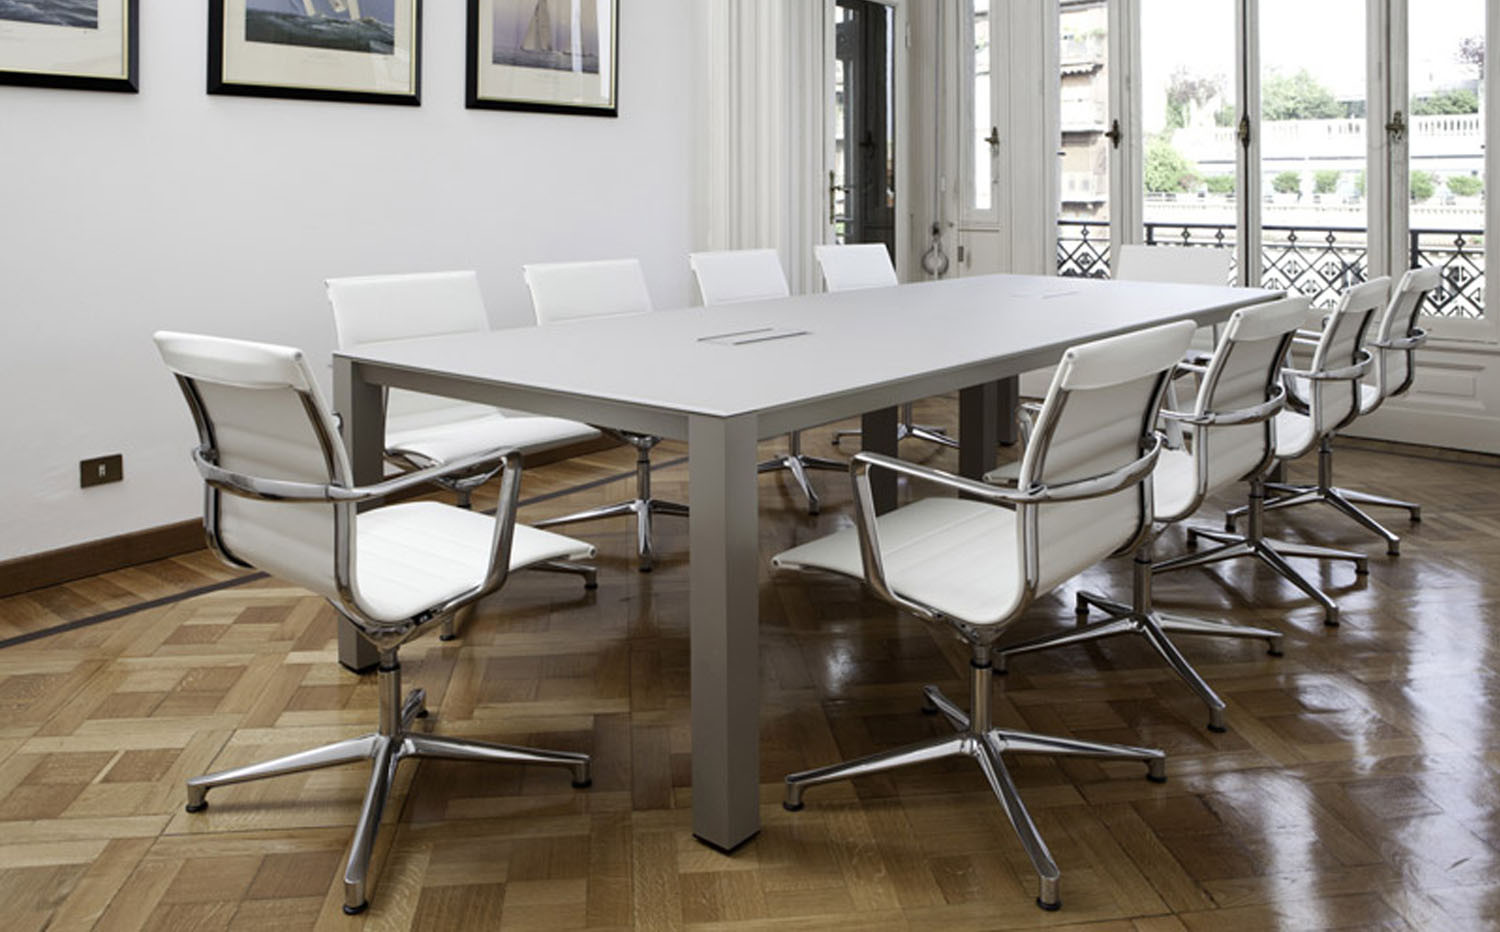 P80 Executive Meeting Tables by ICF Spa